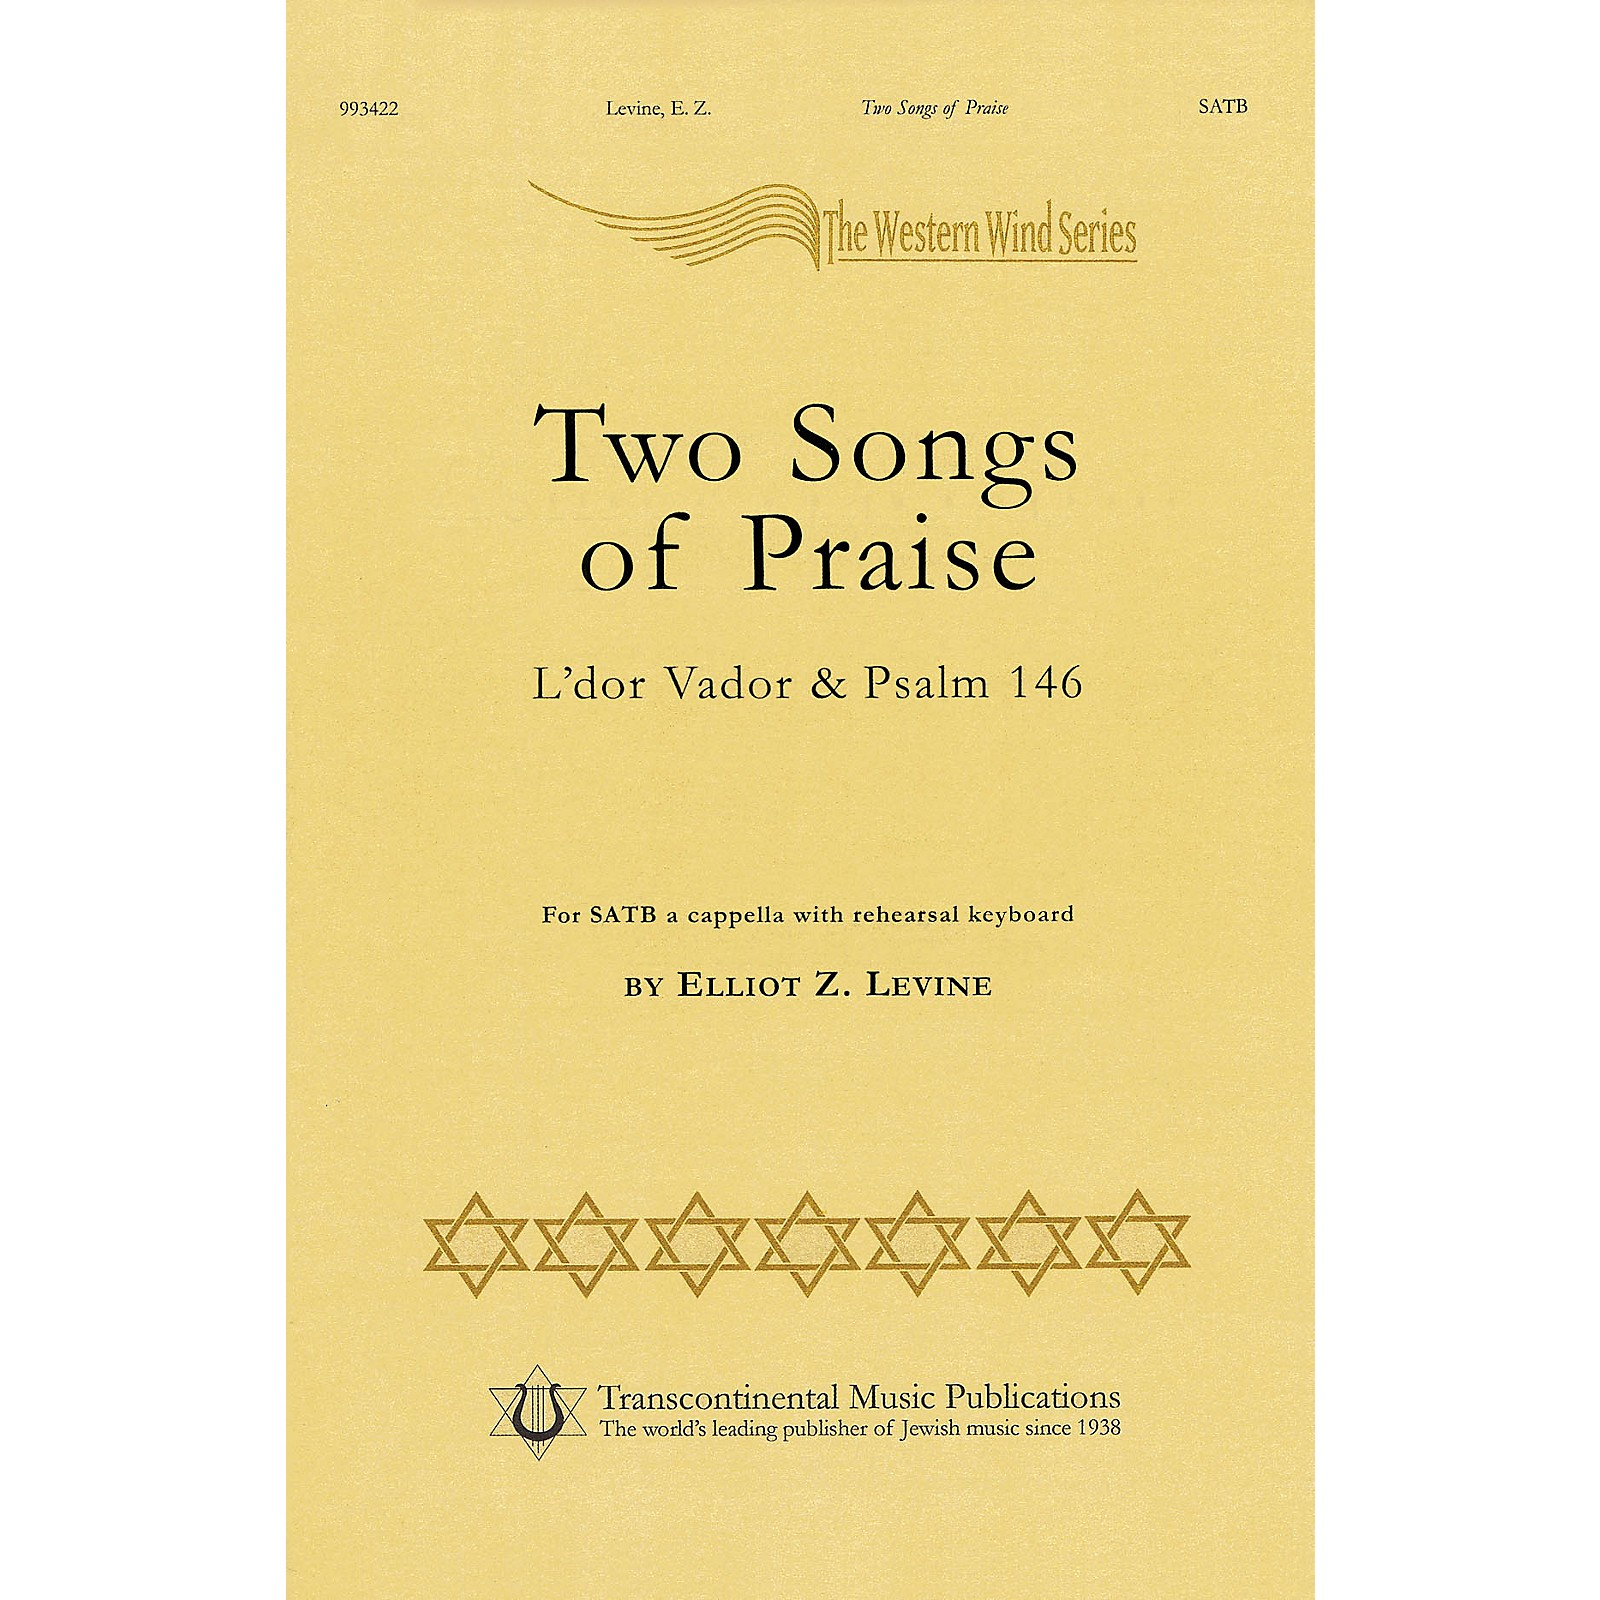 Transcontinental Music Two Songs Of Praise - L'dor Vador & Psalm 146 SATB a cappella composed by Elliot Z. Levine